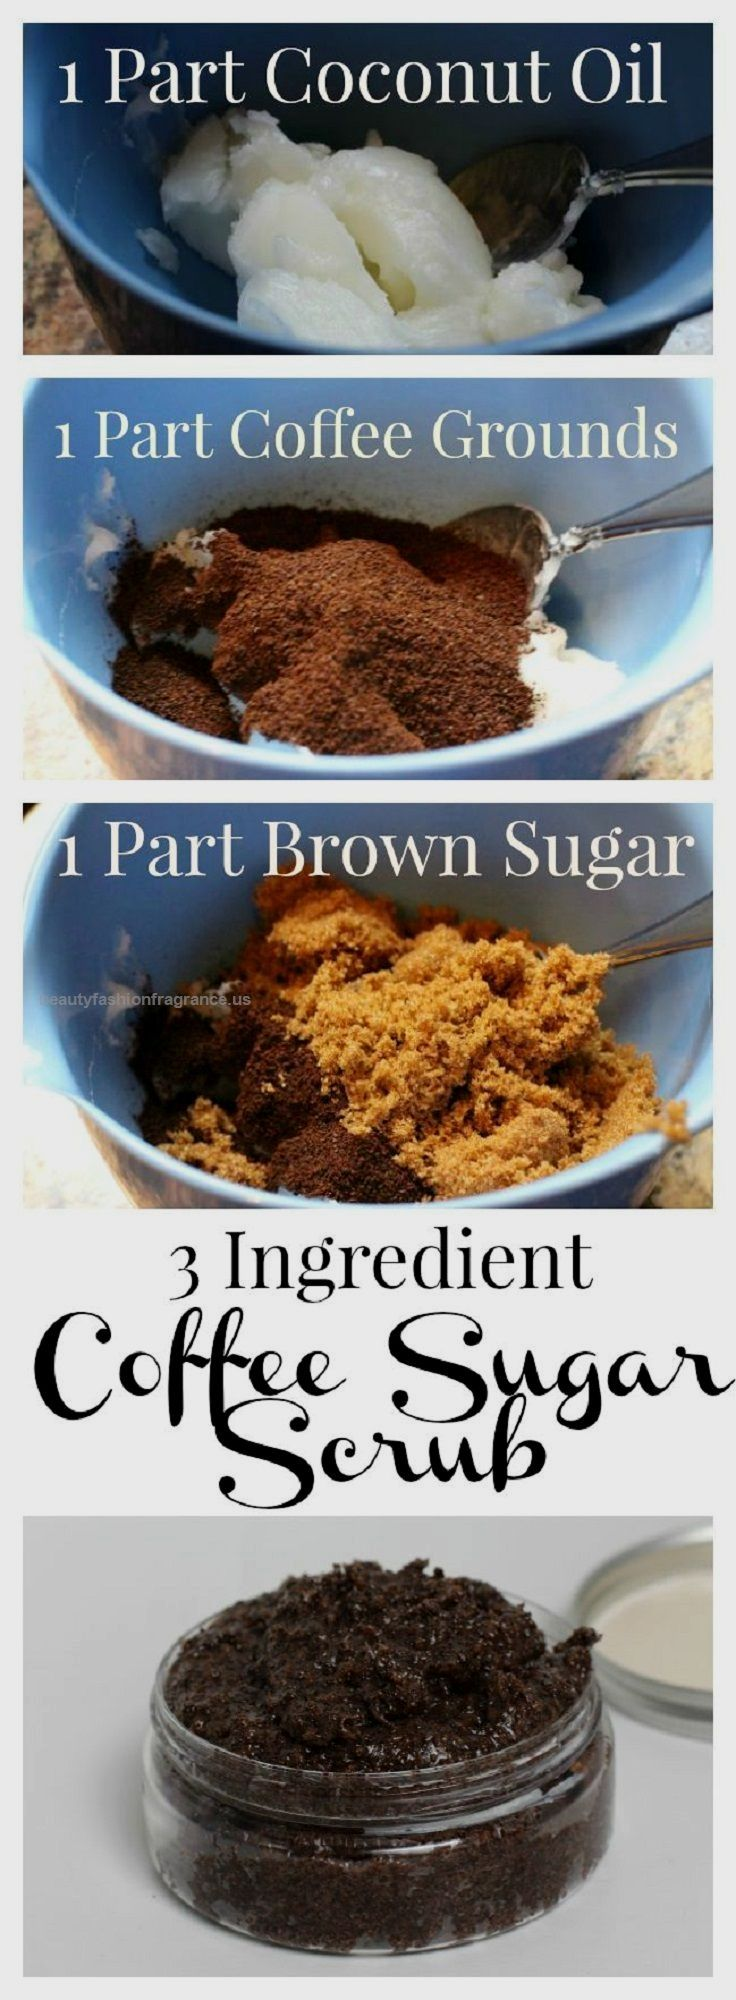 3 Ingredient Coffee and Sugar Scrub – 13 Homemade Cellulite Remedies, Exercises … 3 Ingredient Coffee and Sugar Scrub – 13 Homemade Cellulite Remedies, Exercises and Juice Recipes http://www.beautyfashionfragrance.us/2017/06/11/3-ingredient-coffee-and-sugar-scrub-13-homemade-cellulite-remedies-exercises/ * More info: | http://qoo.by/2mtz